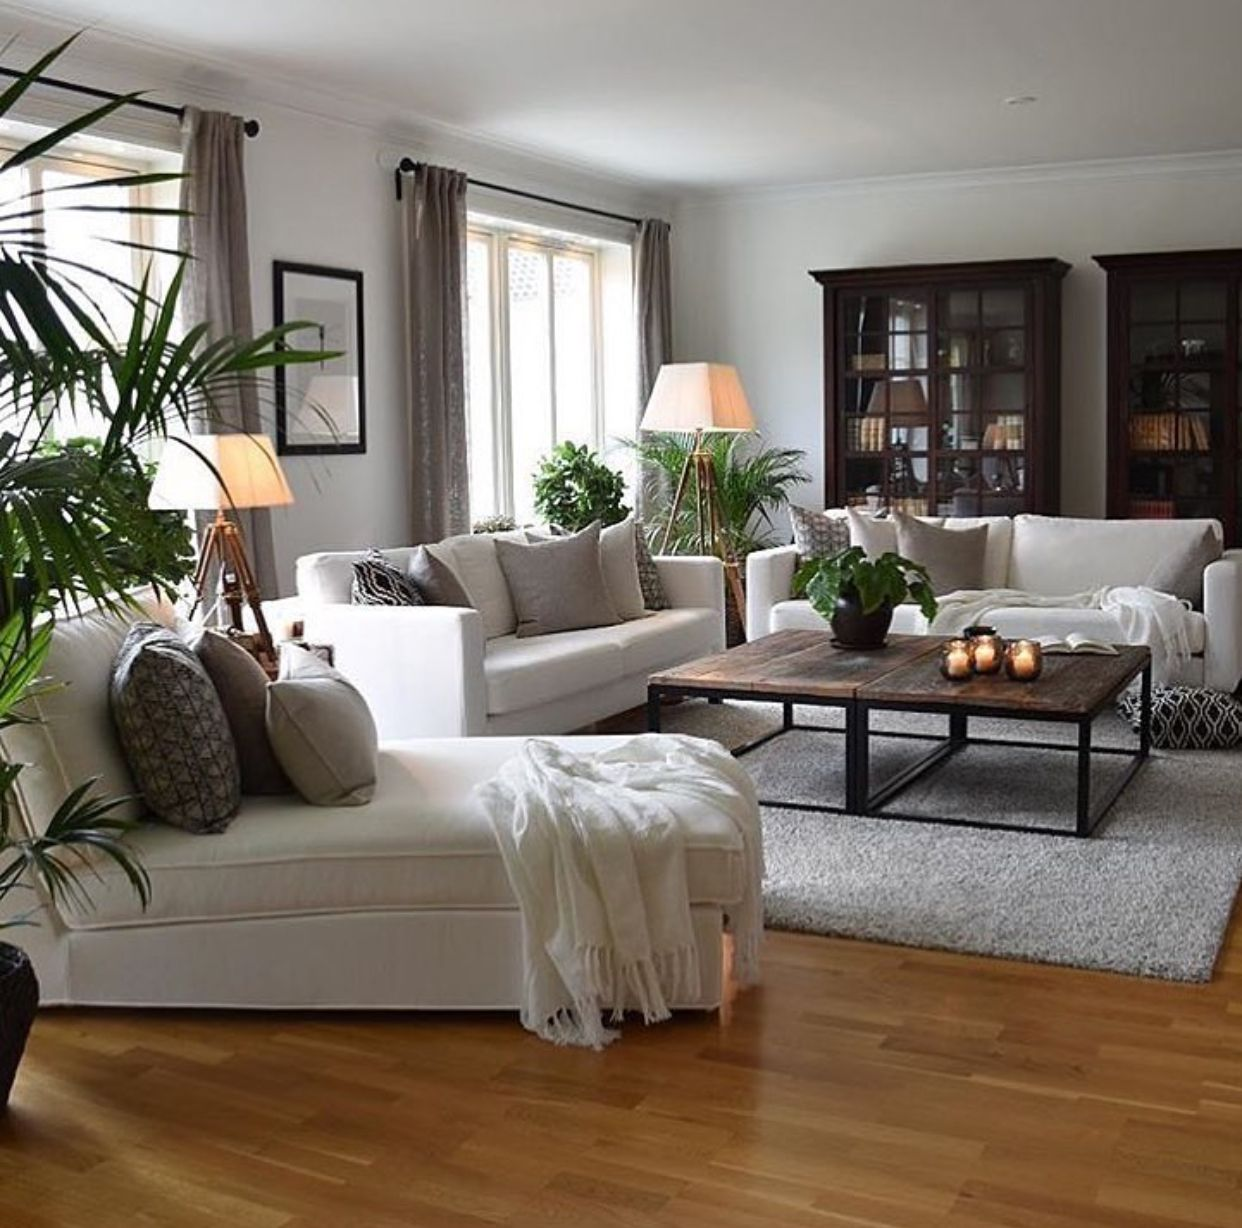 Chaise Lounge By Fireplace For Corner Where Entertainment Cabinet